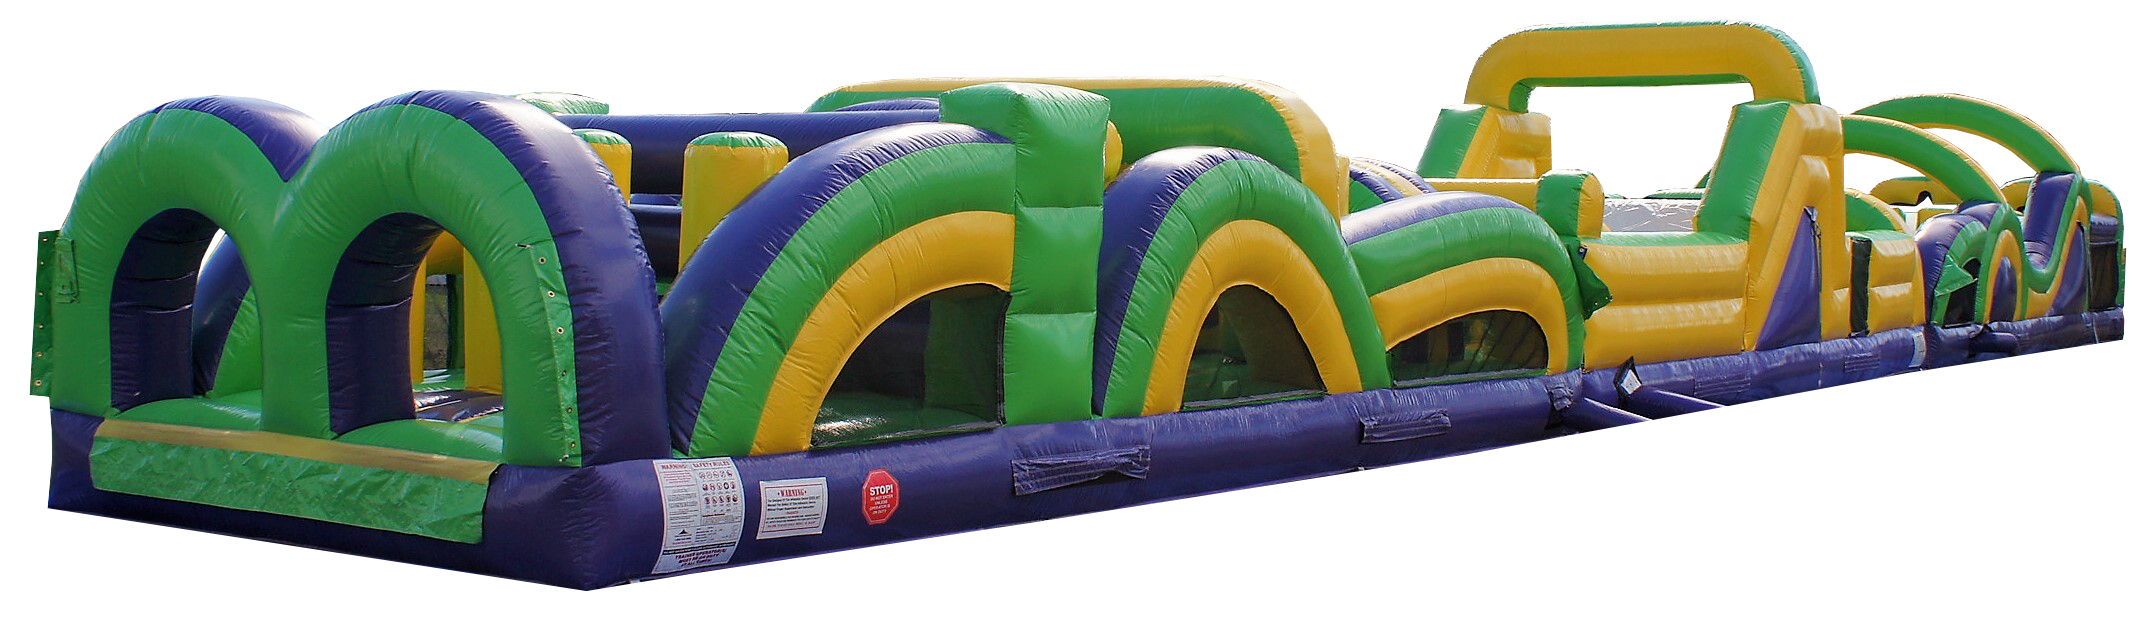 obstacle courses for rent Murfreesboro